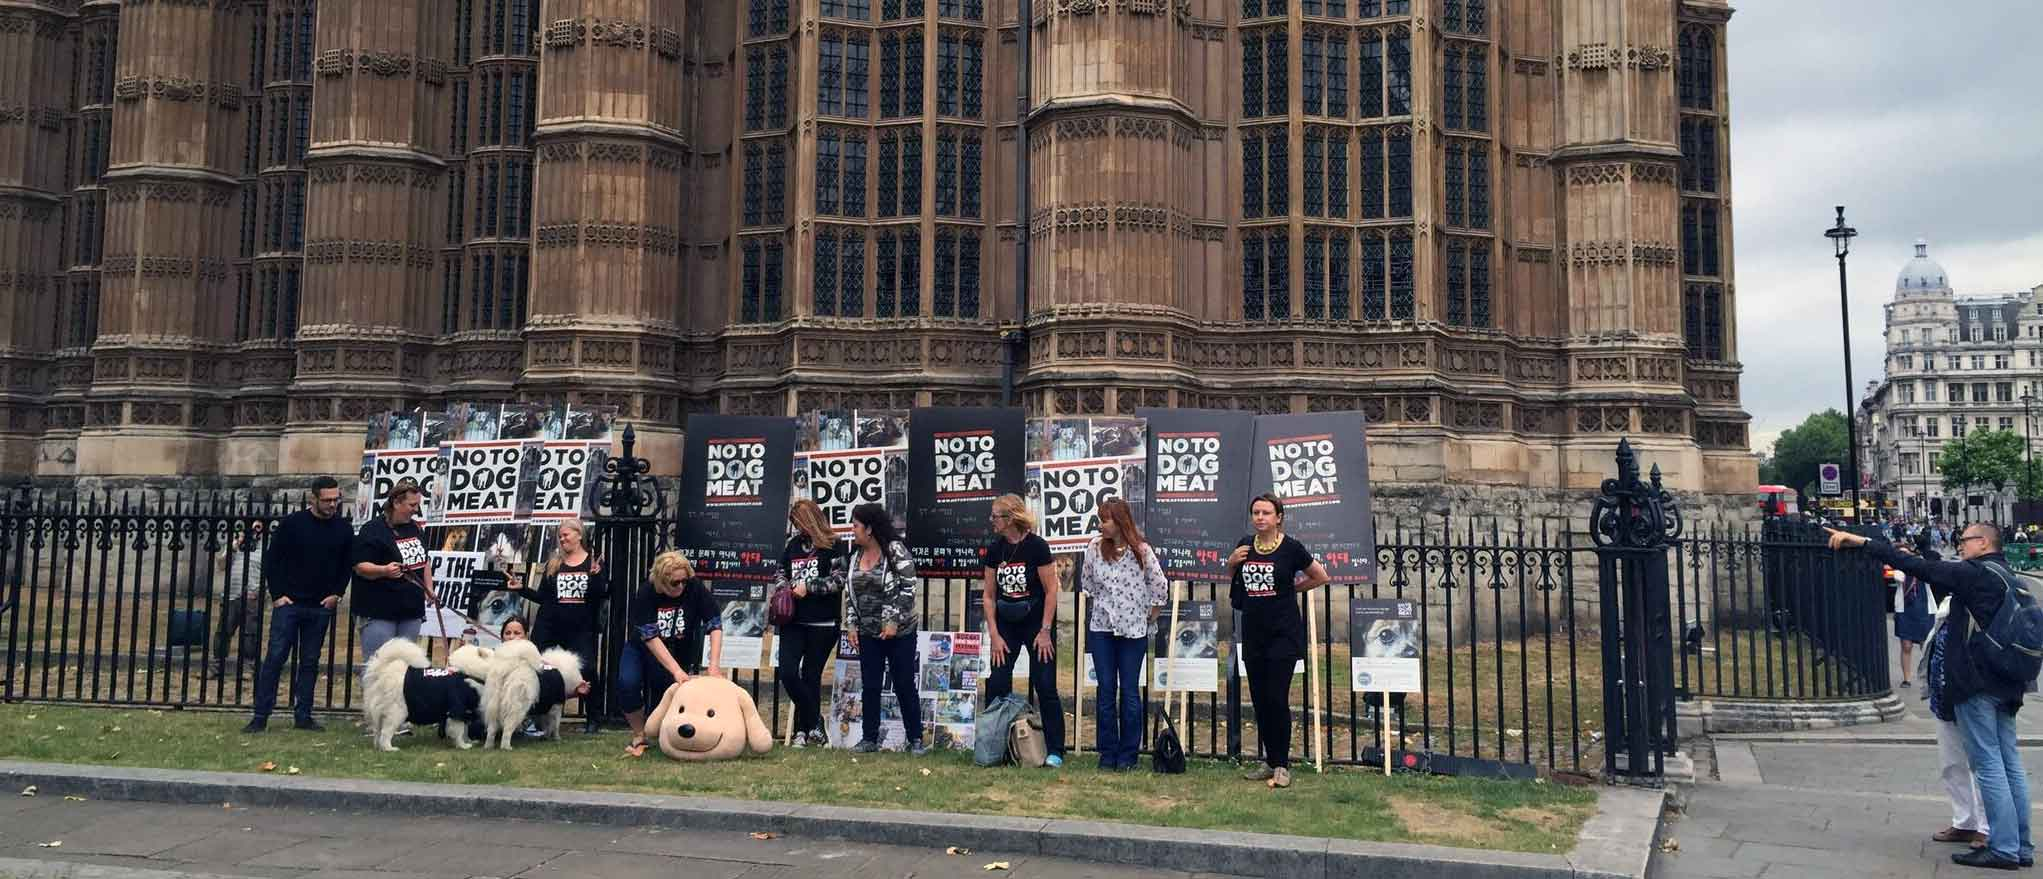 notodogmeat at the house of parliament